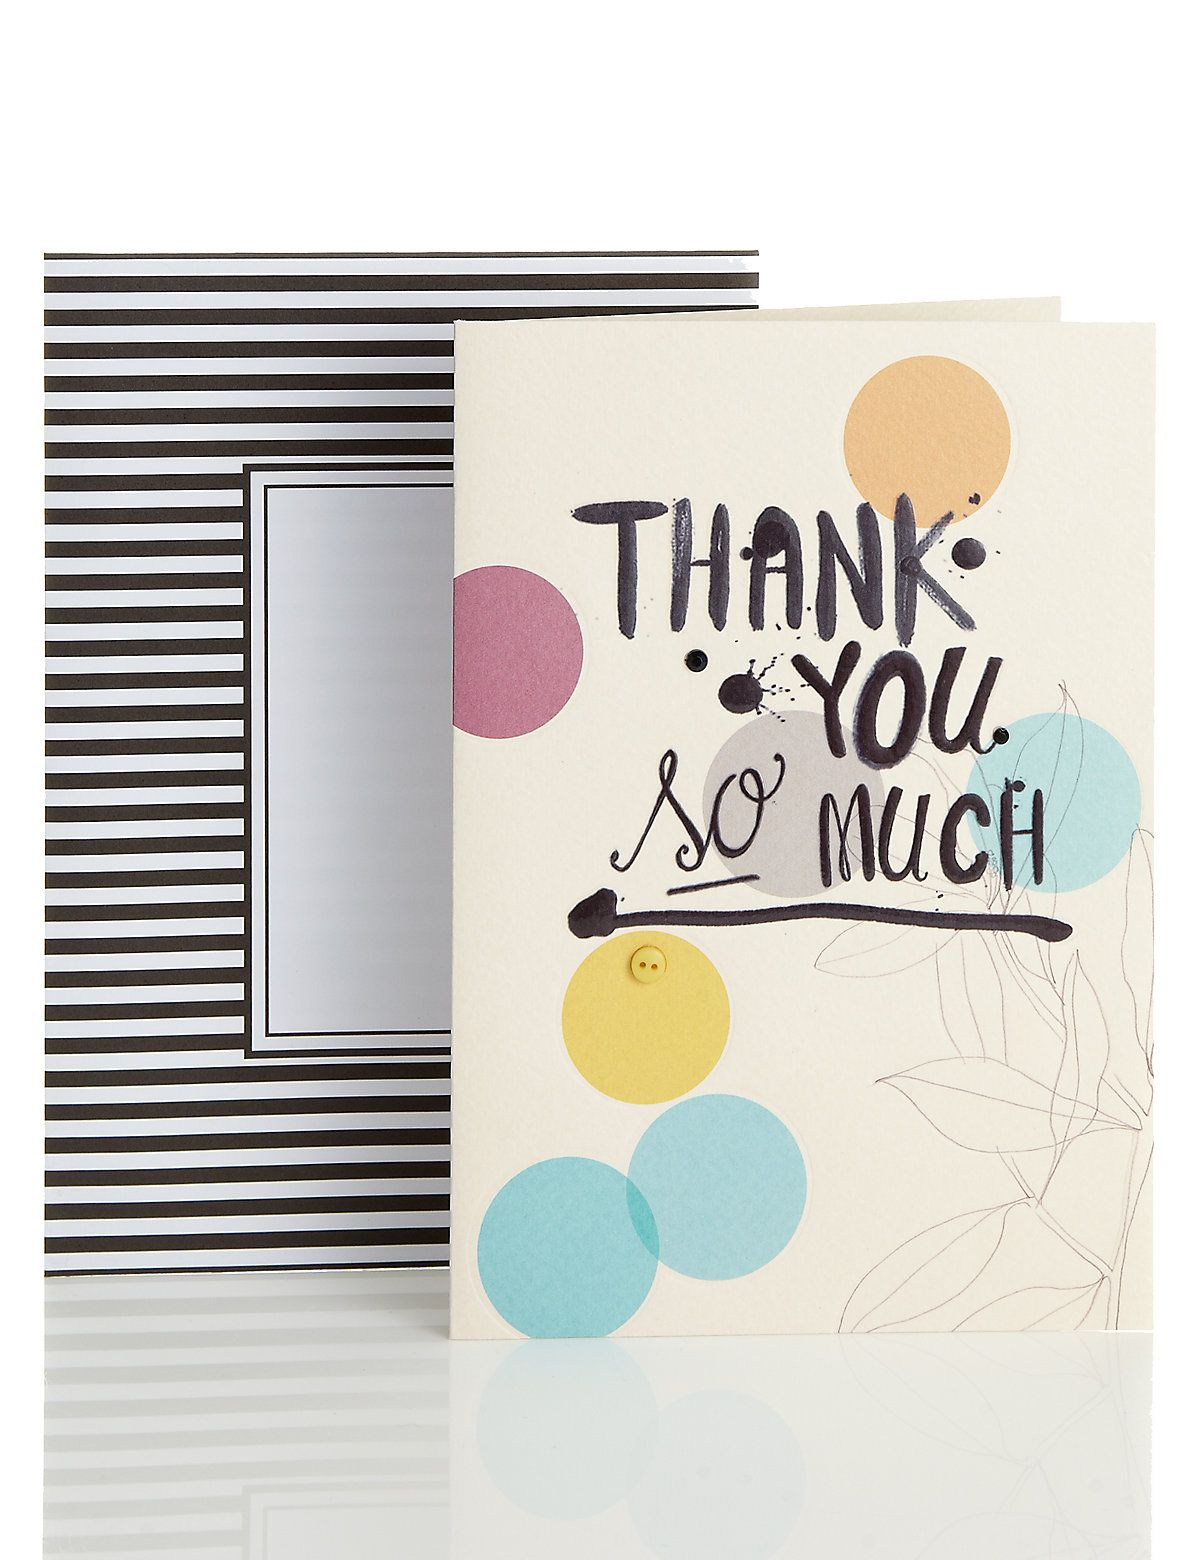 Thank you spots button greetings card ms art journalling thank you spots button greetings card ms kristyandbryce Image collections